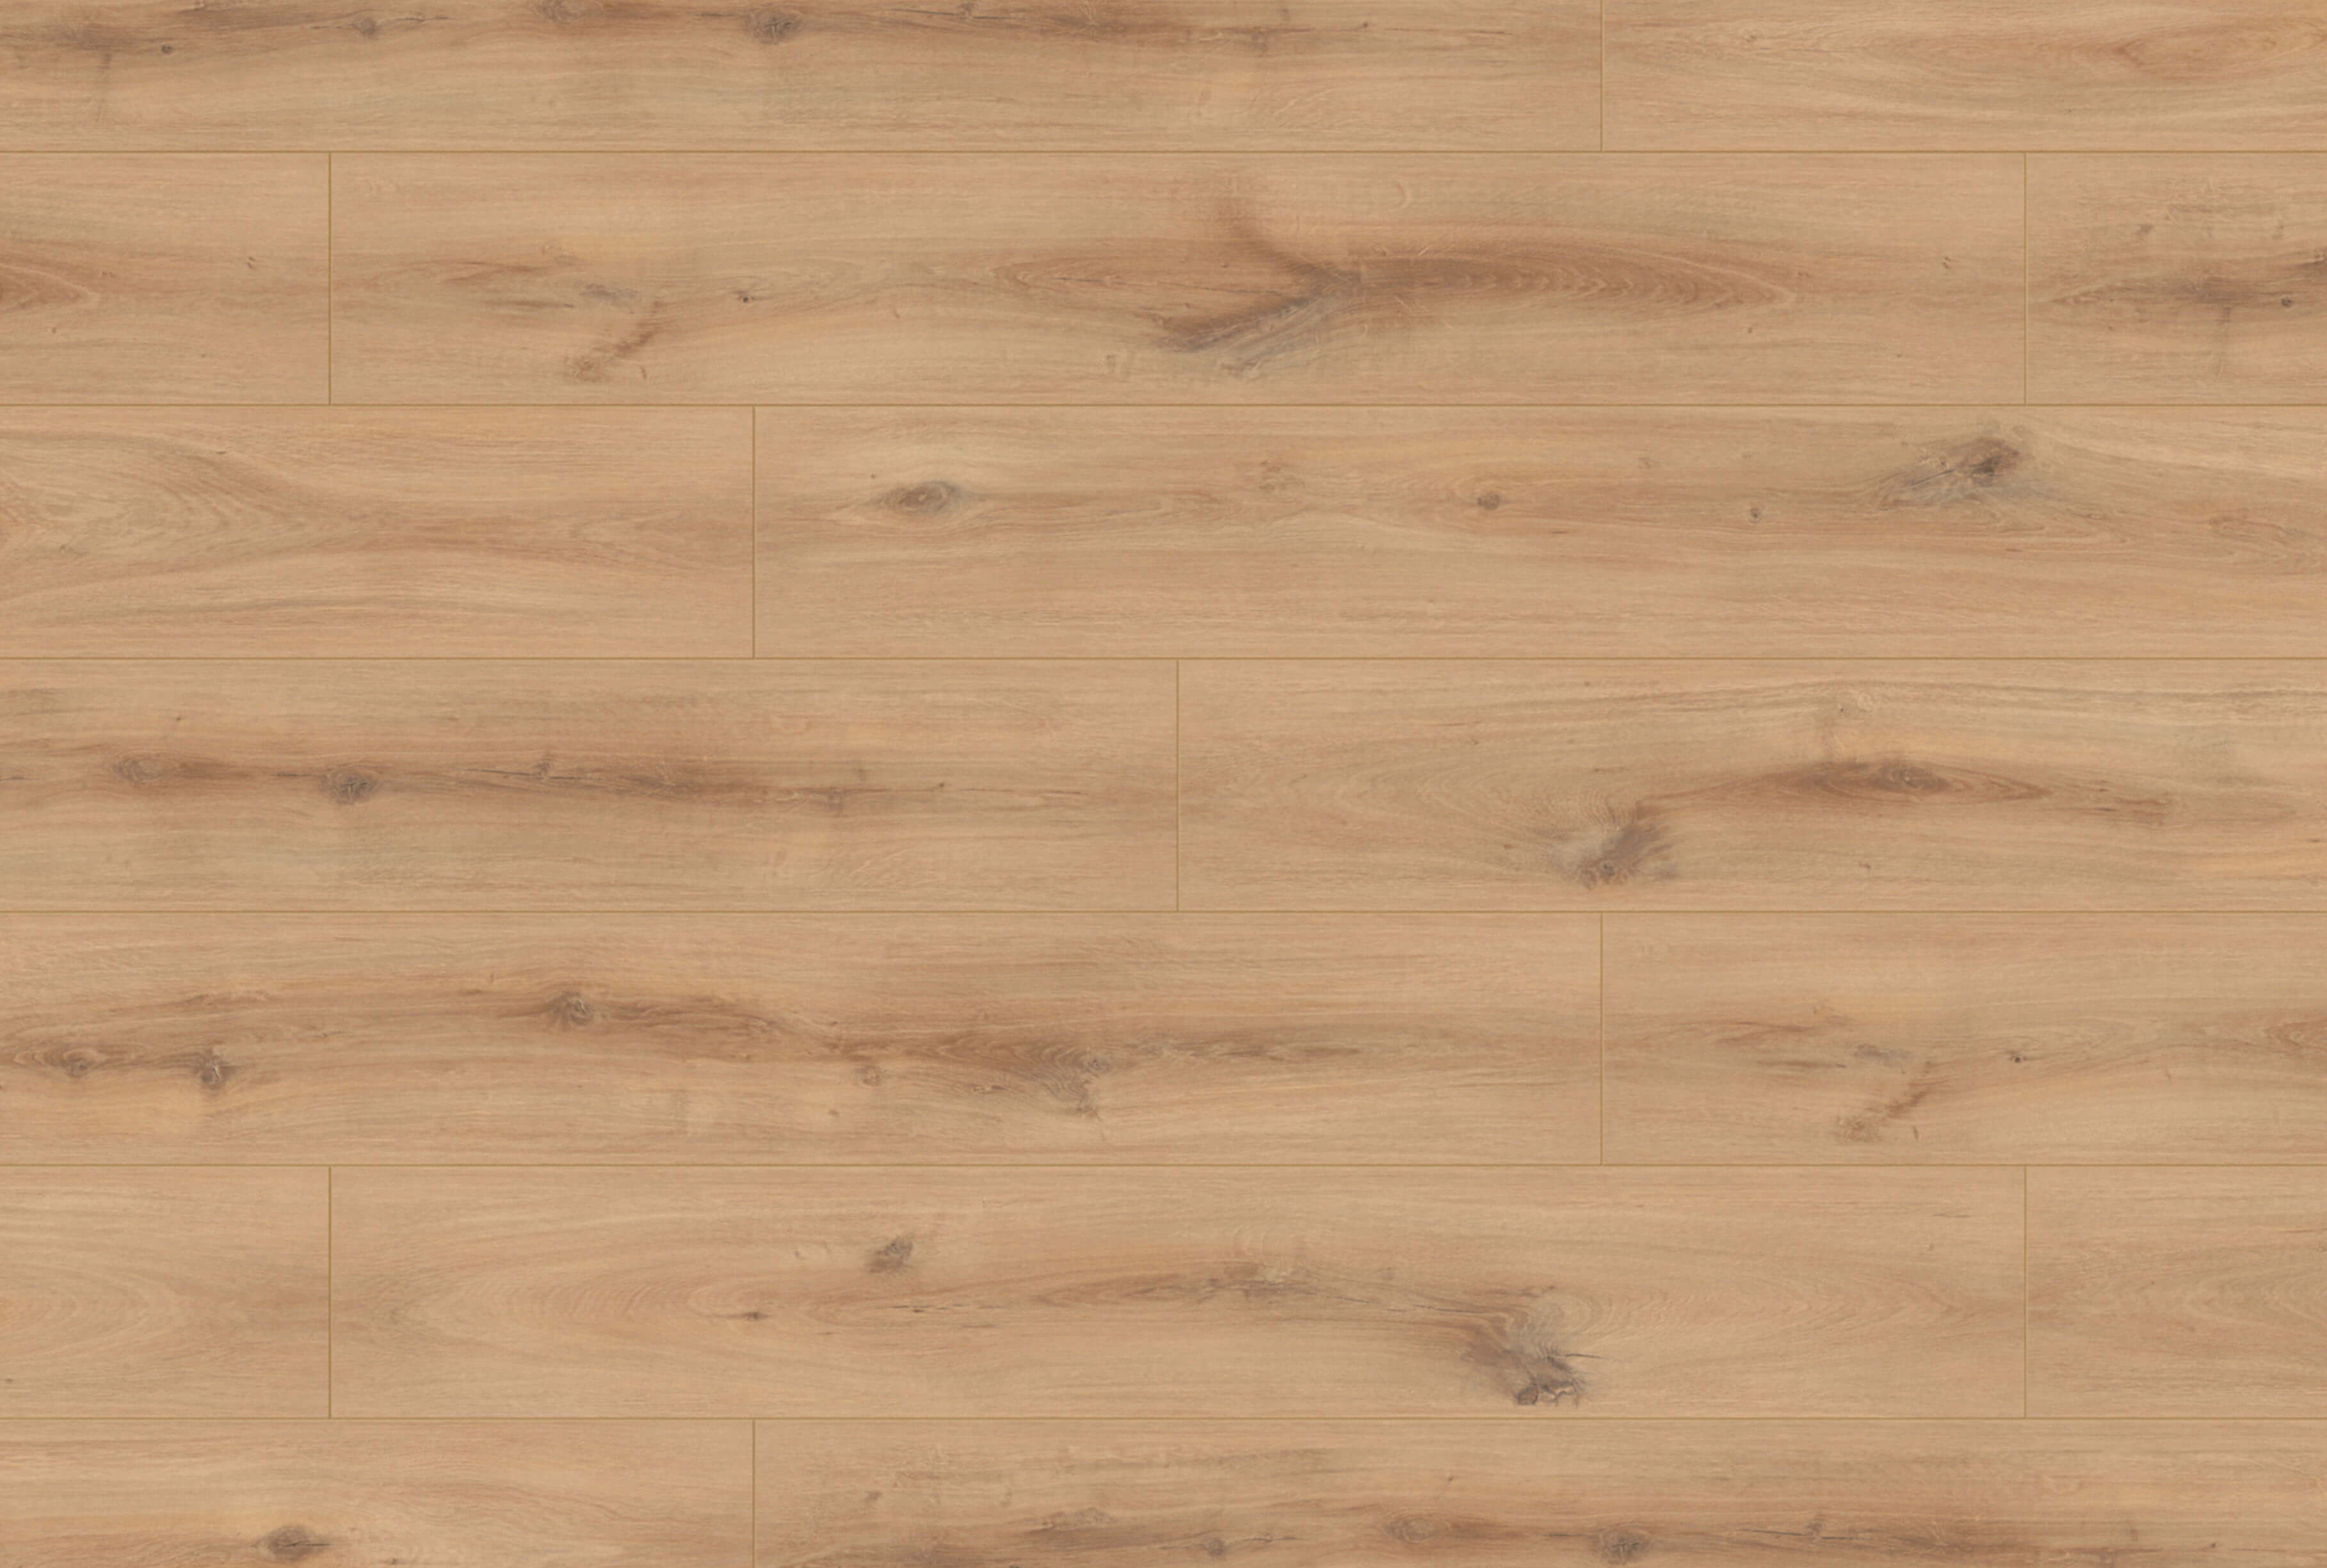 1533 · Ontario Oak<br>Format size: W 192 mm x L 1285 mm<br>Structure: Tidal Oak, Authentic Embossed